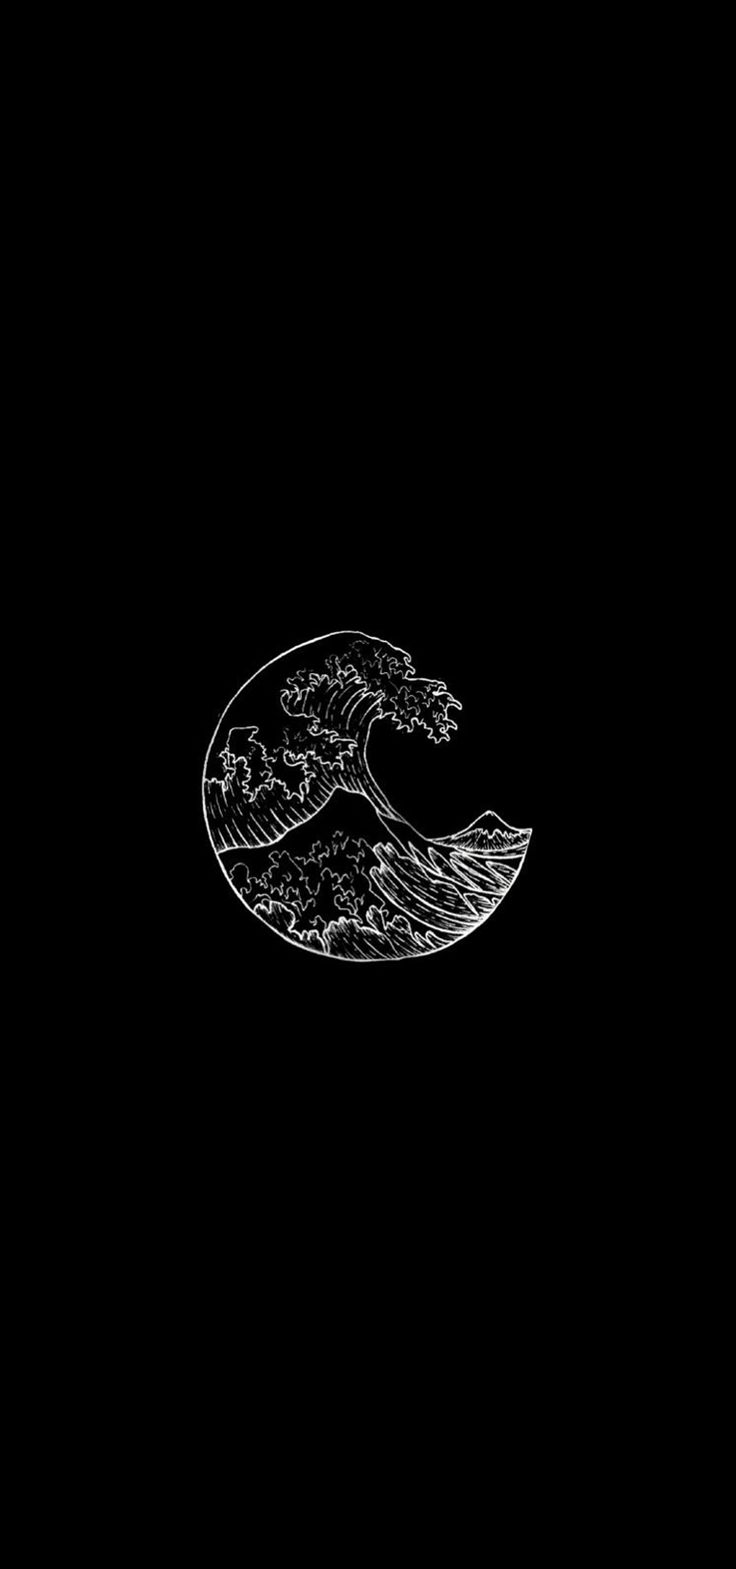 Cool Wallpapers Backgrounds Black, Pin by juls on Aesthetic in 2019 / Black phon…